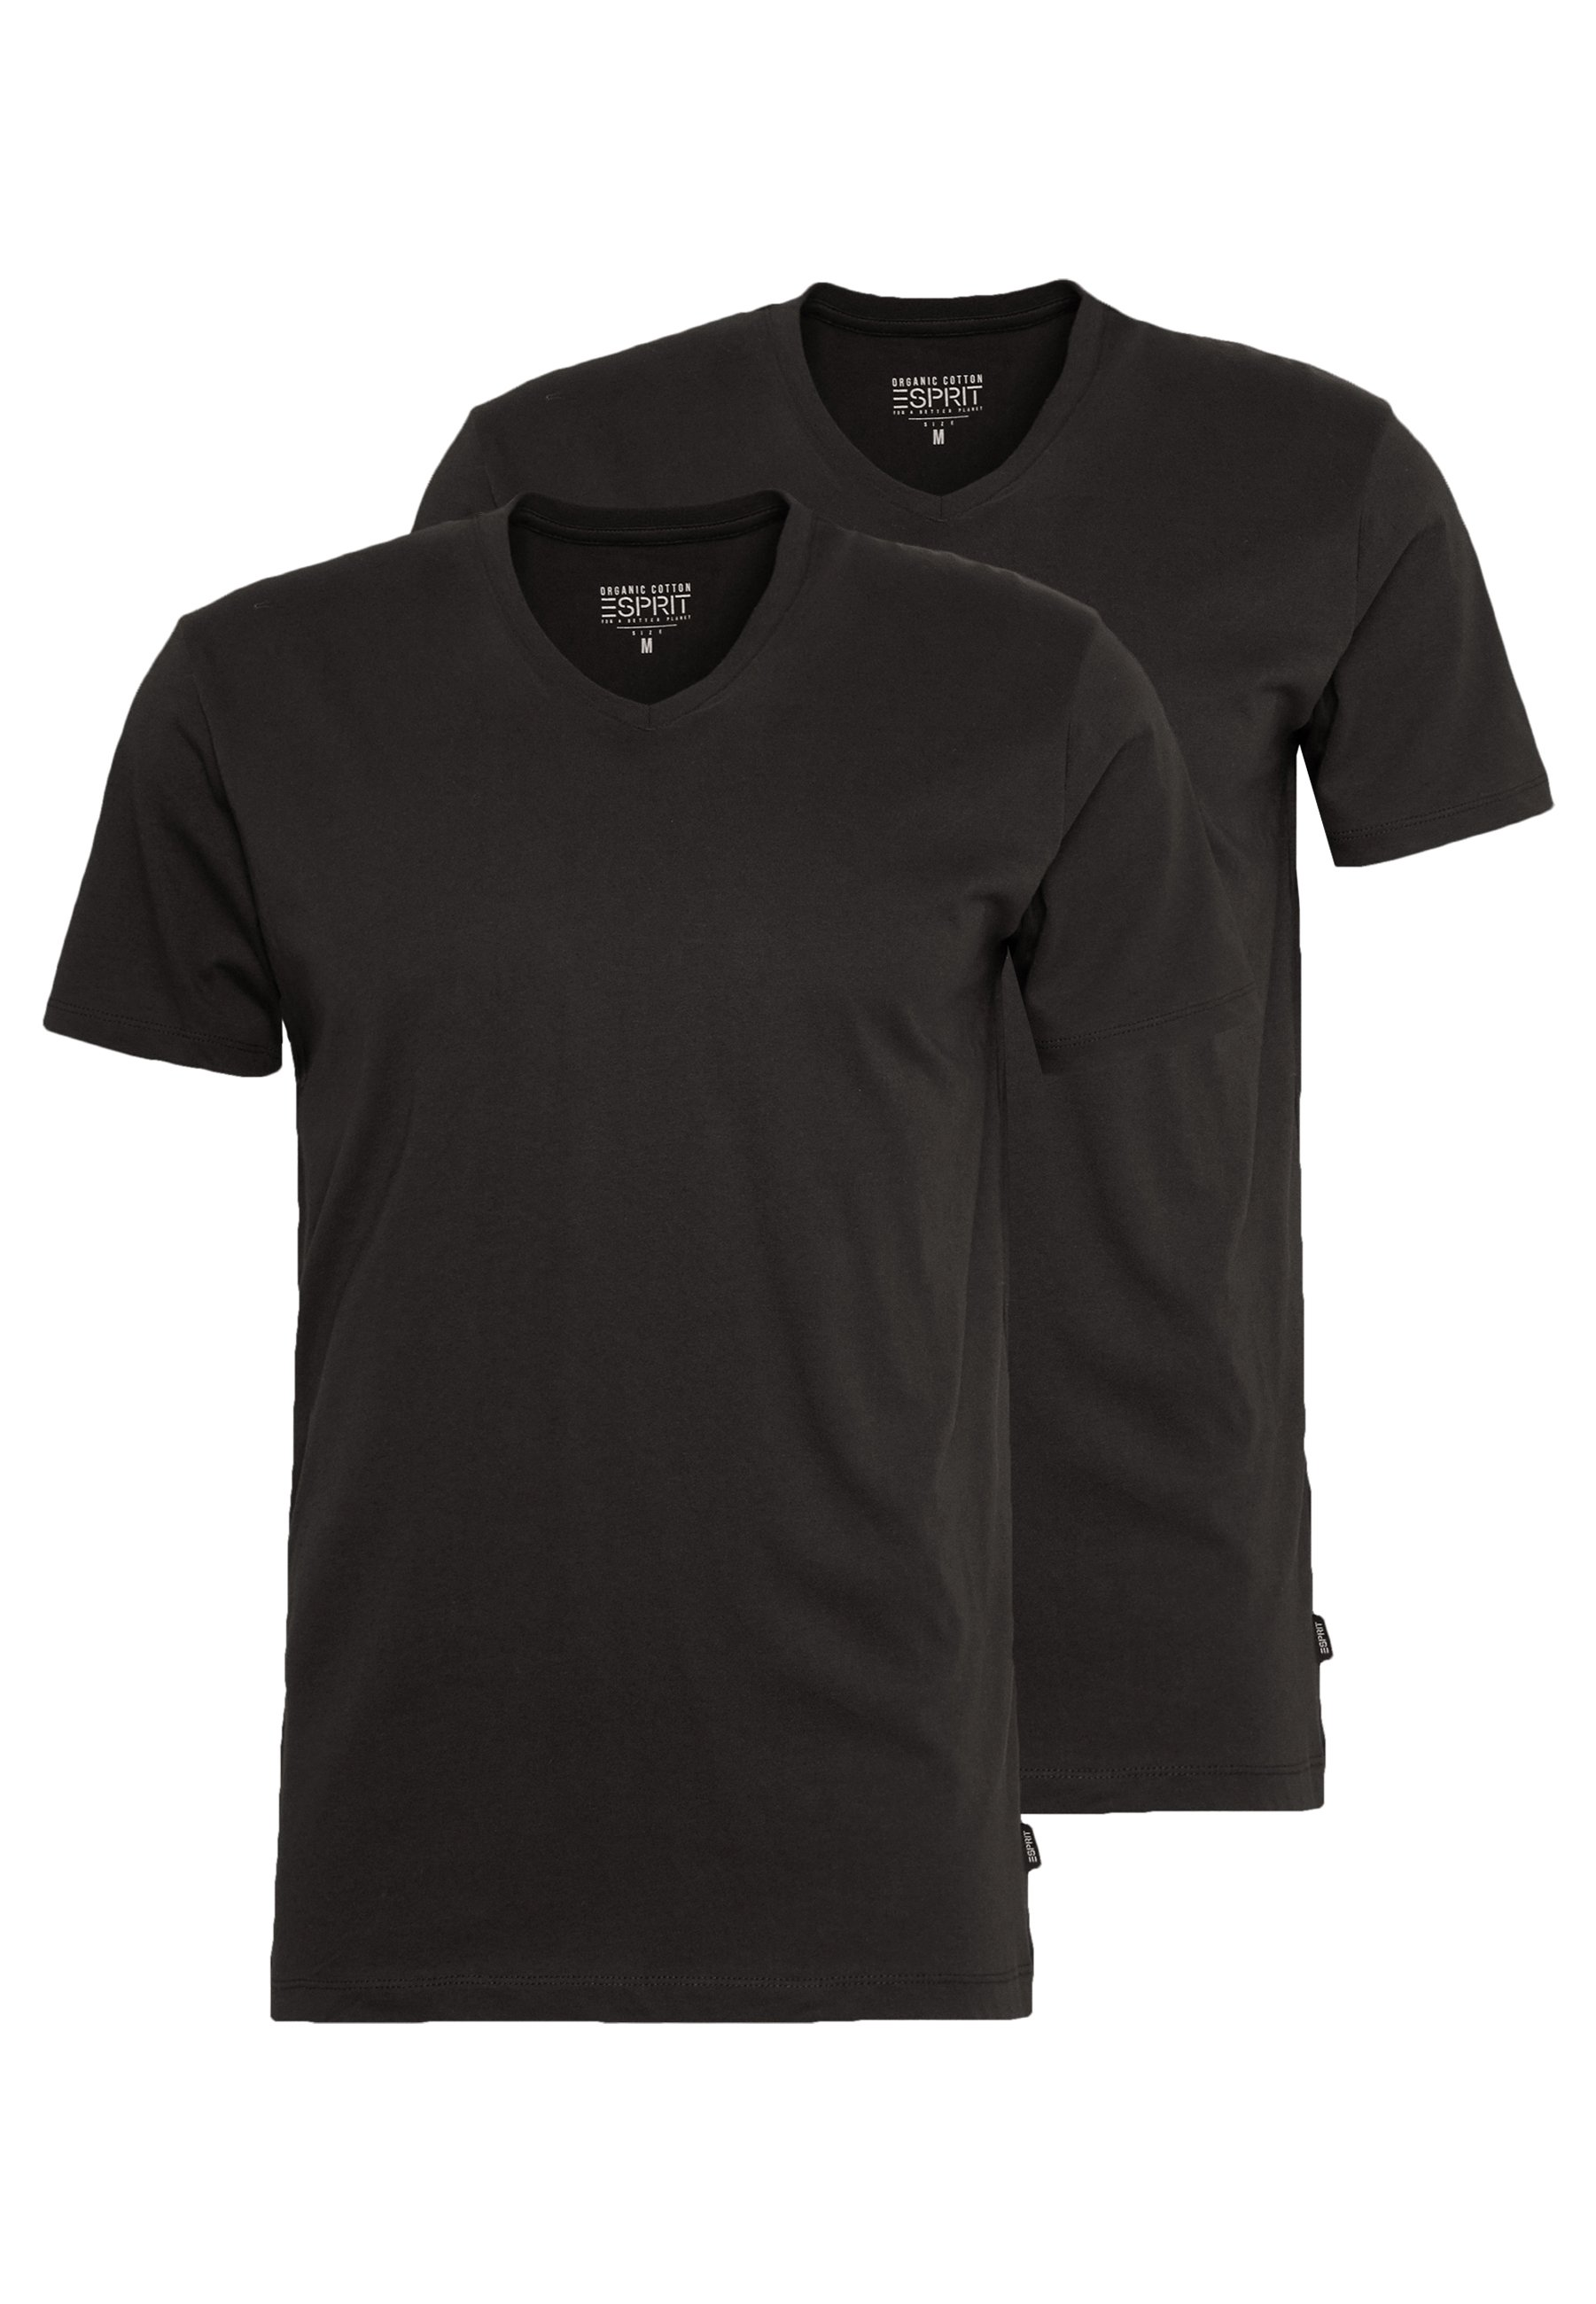 Esprit 2 Pack - T-shirts Basic Black